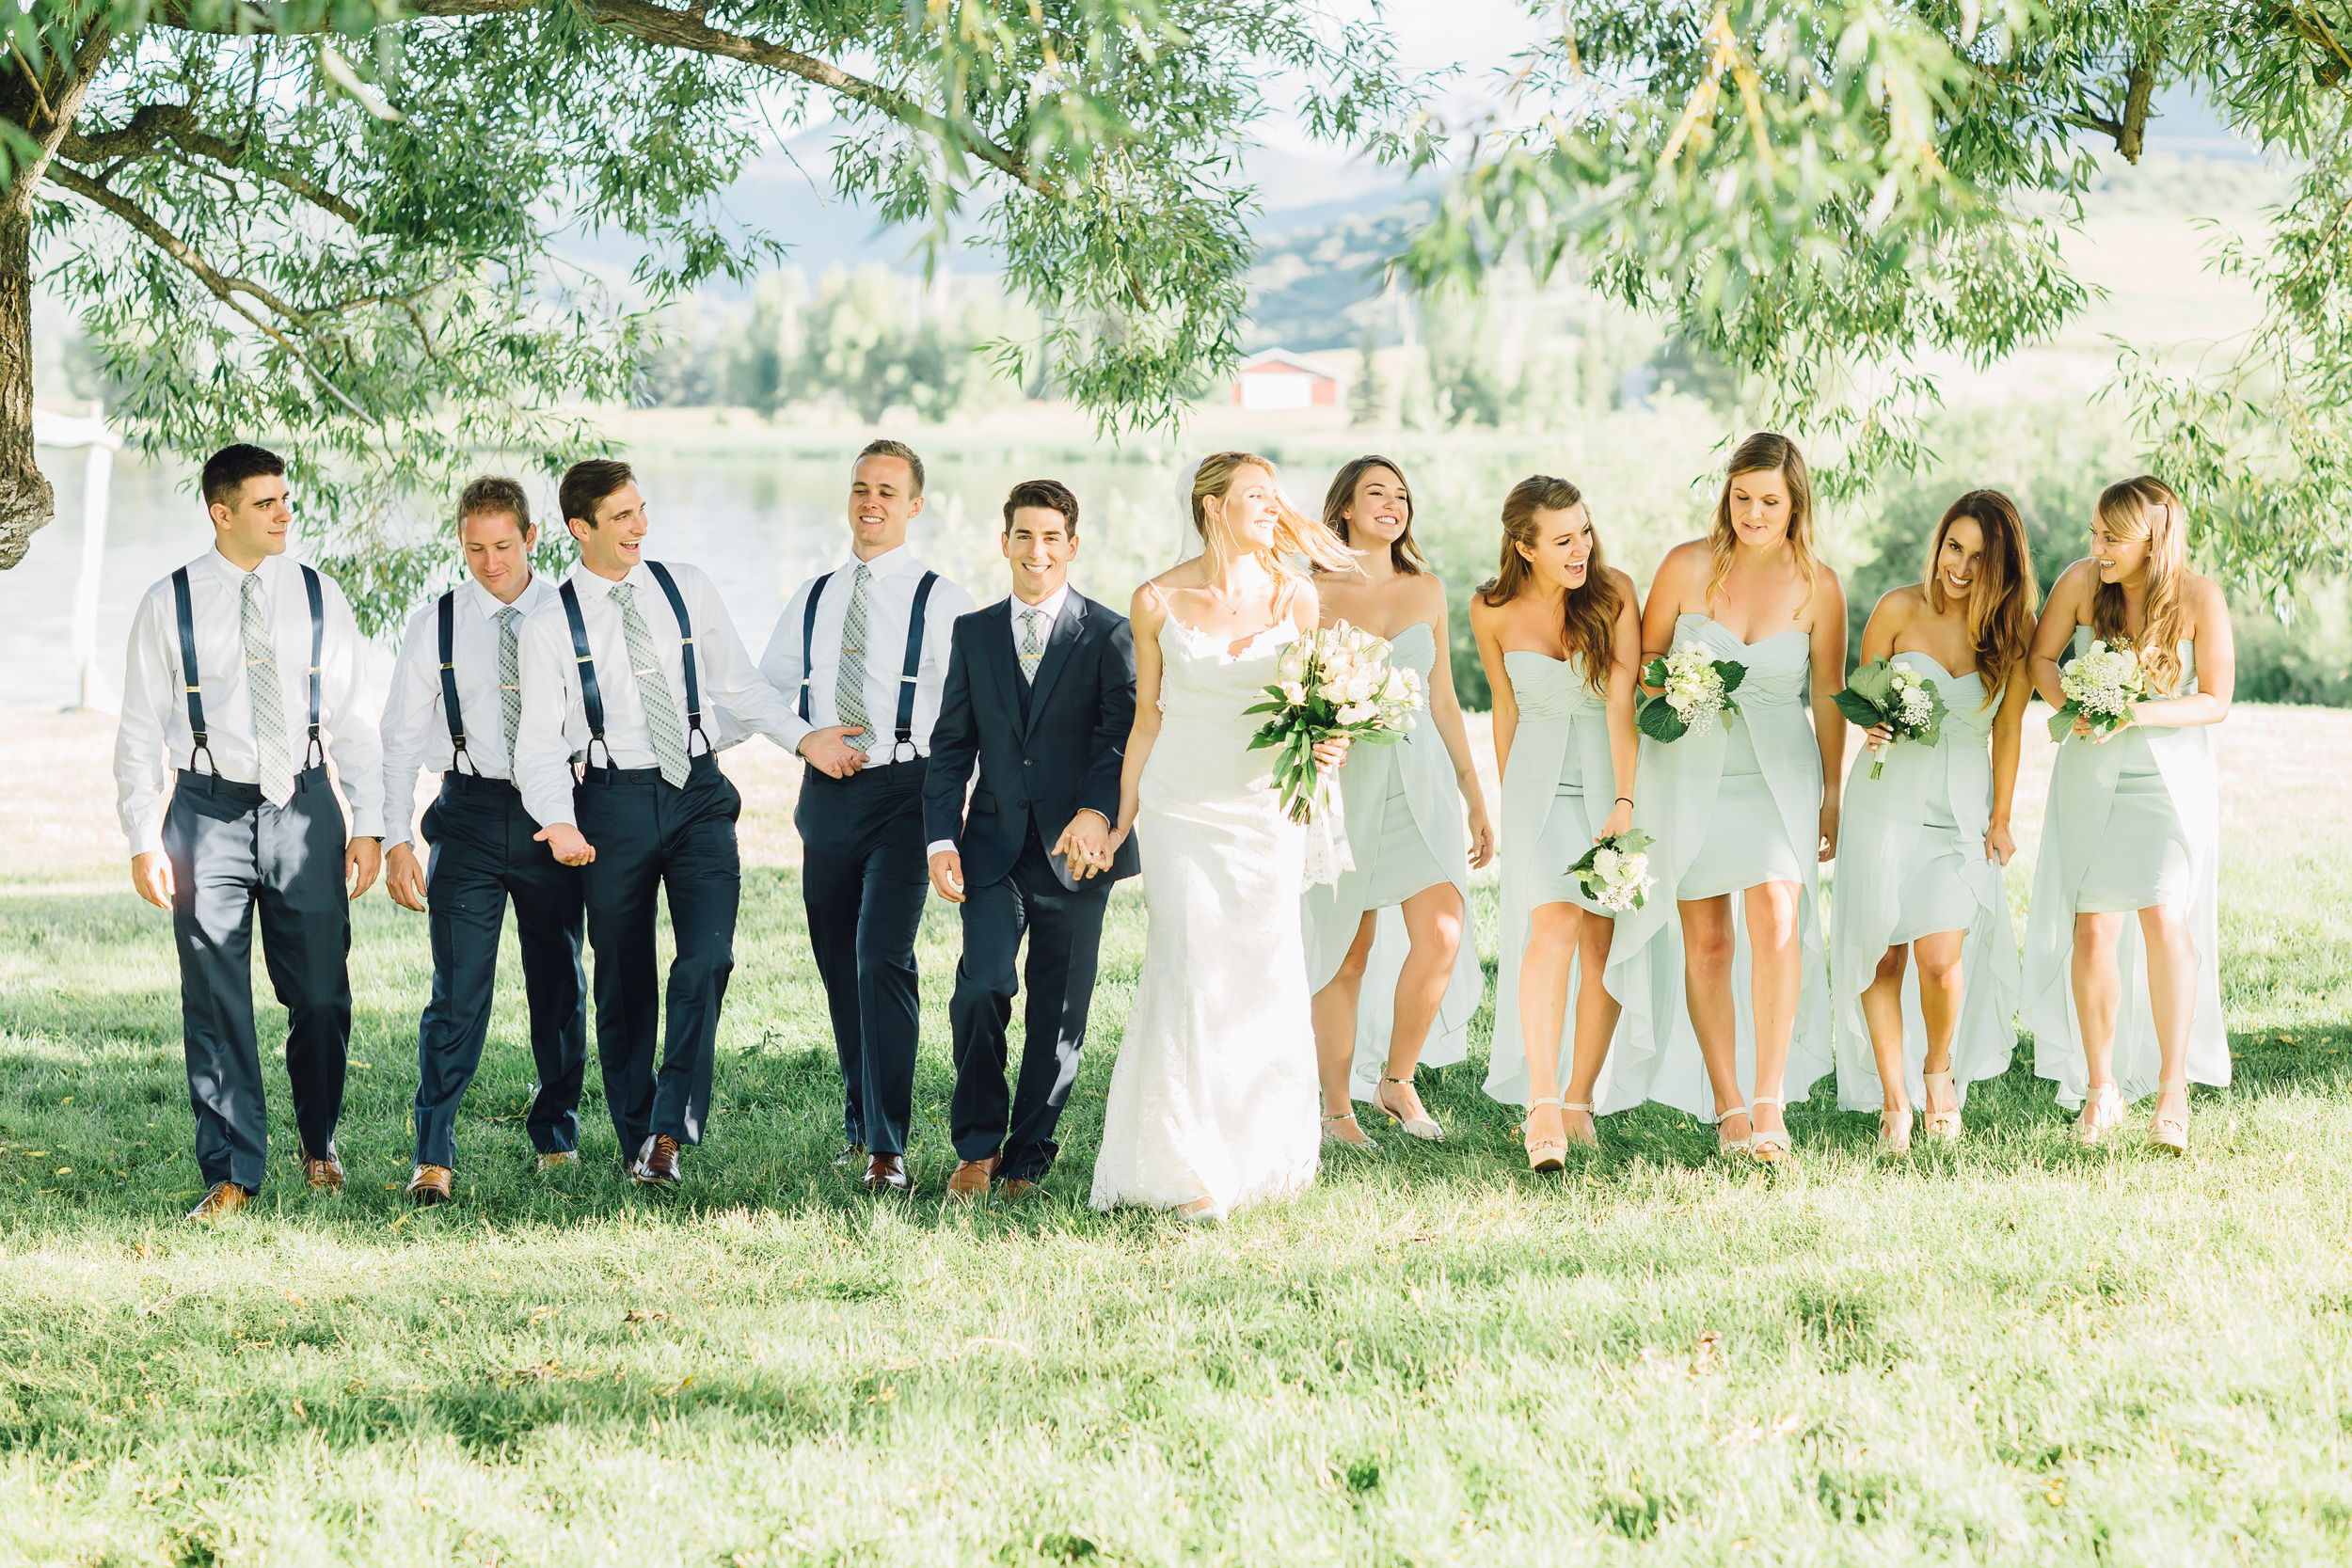 Seedhouse_RobinWedding417.jpg